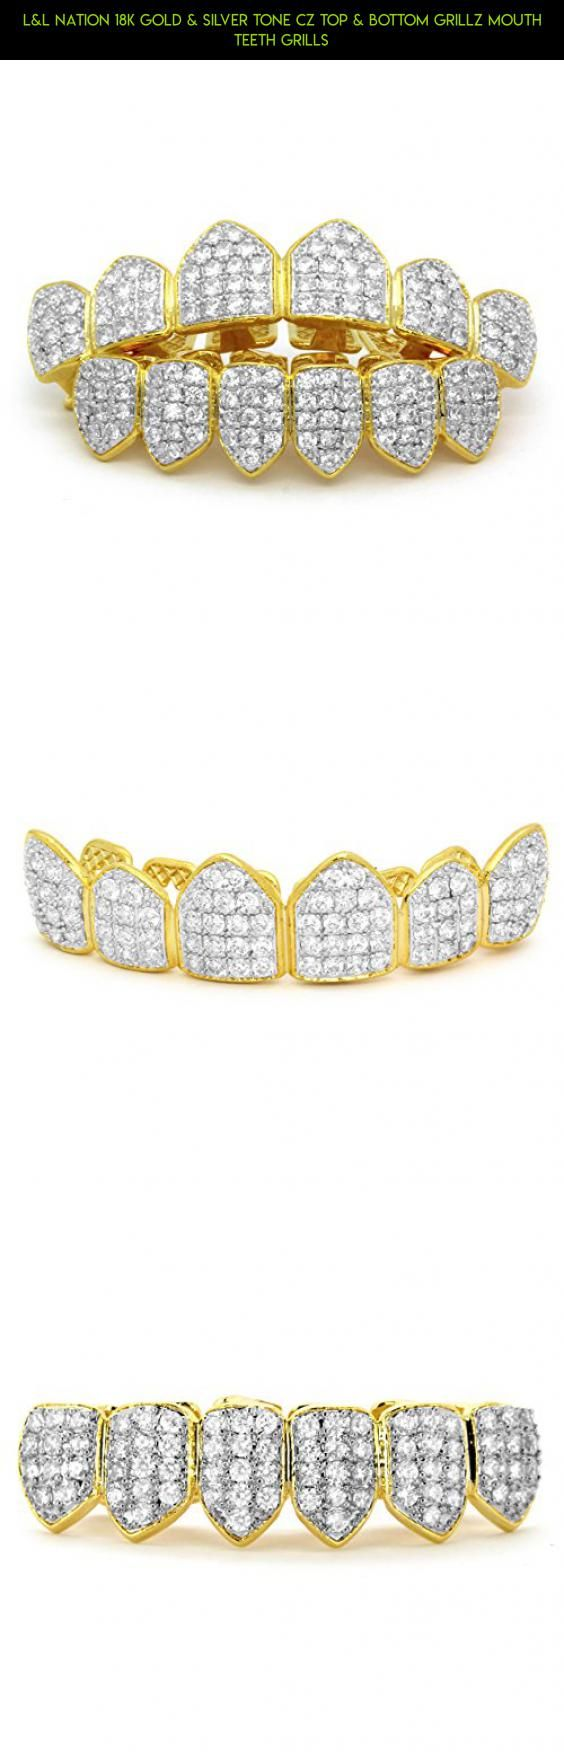 L&L Nation 18K Gold & Silver Tone CZ Top & Bottom GRILLZ Mouth Teeth Grills #teeth #shopping #products #gadgets #for #fpv #parts #grills #plans #racing #your #technology #kit #tech #camera #drone